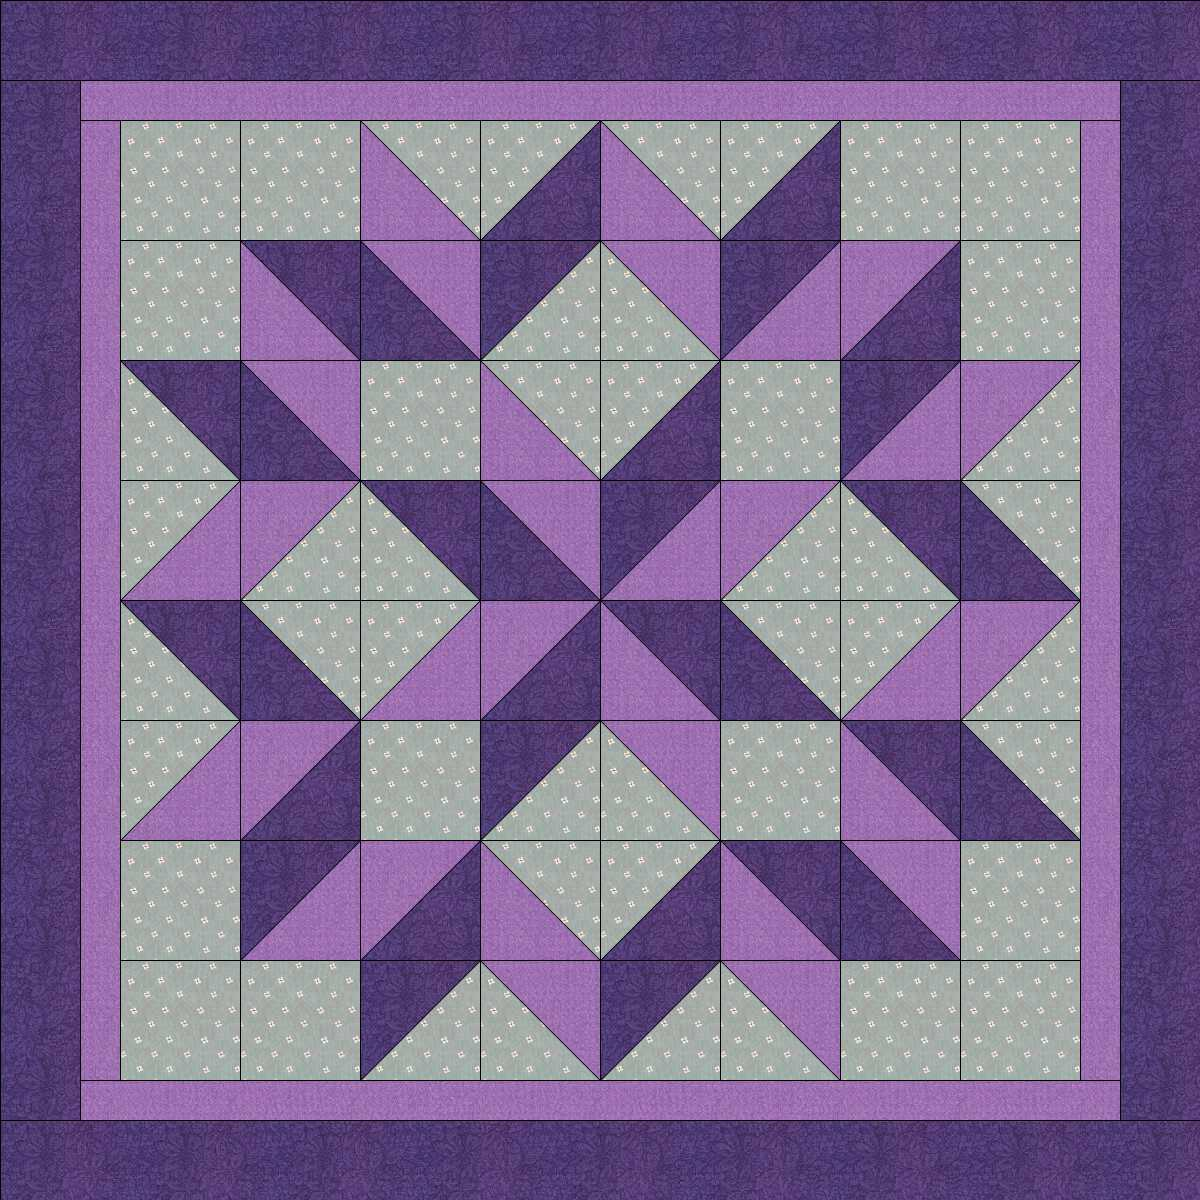 Simple Quilts Templates Quilt Kit : Quiltessentials in Carlisle Lucie The Happy Quilter's Blog